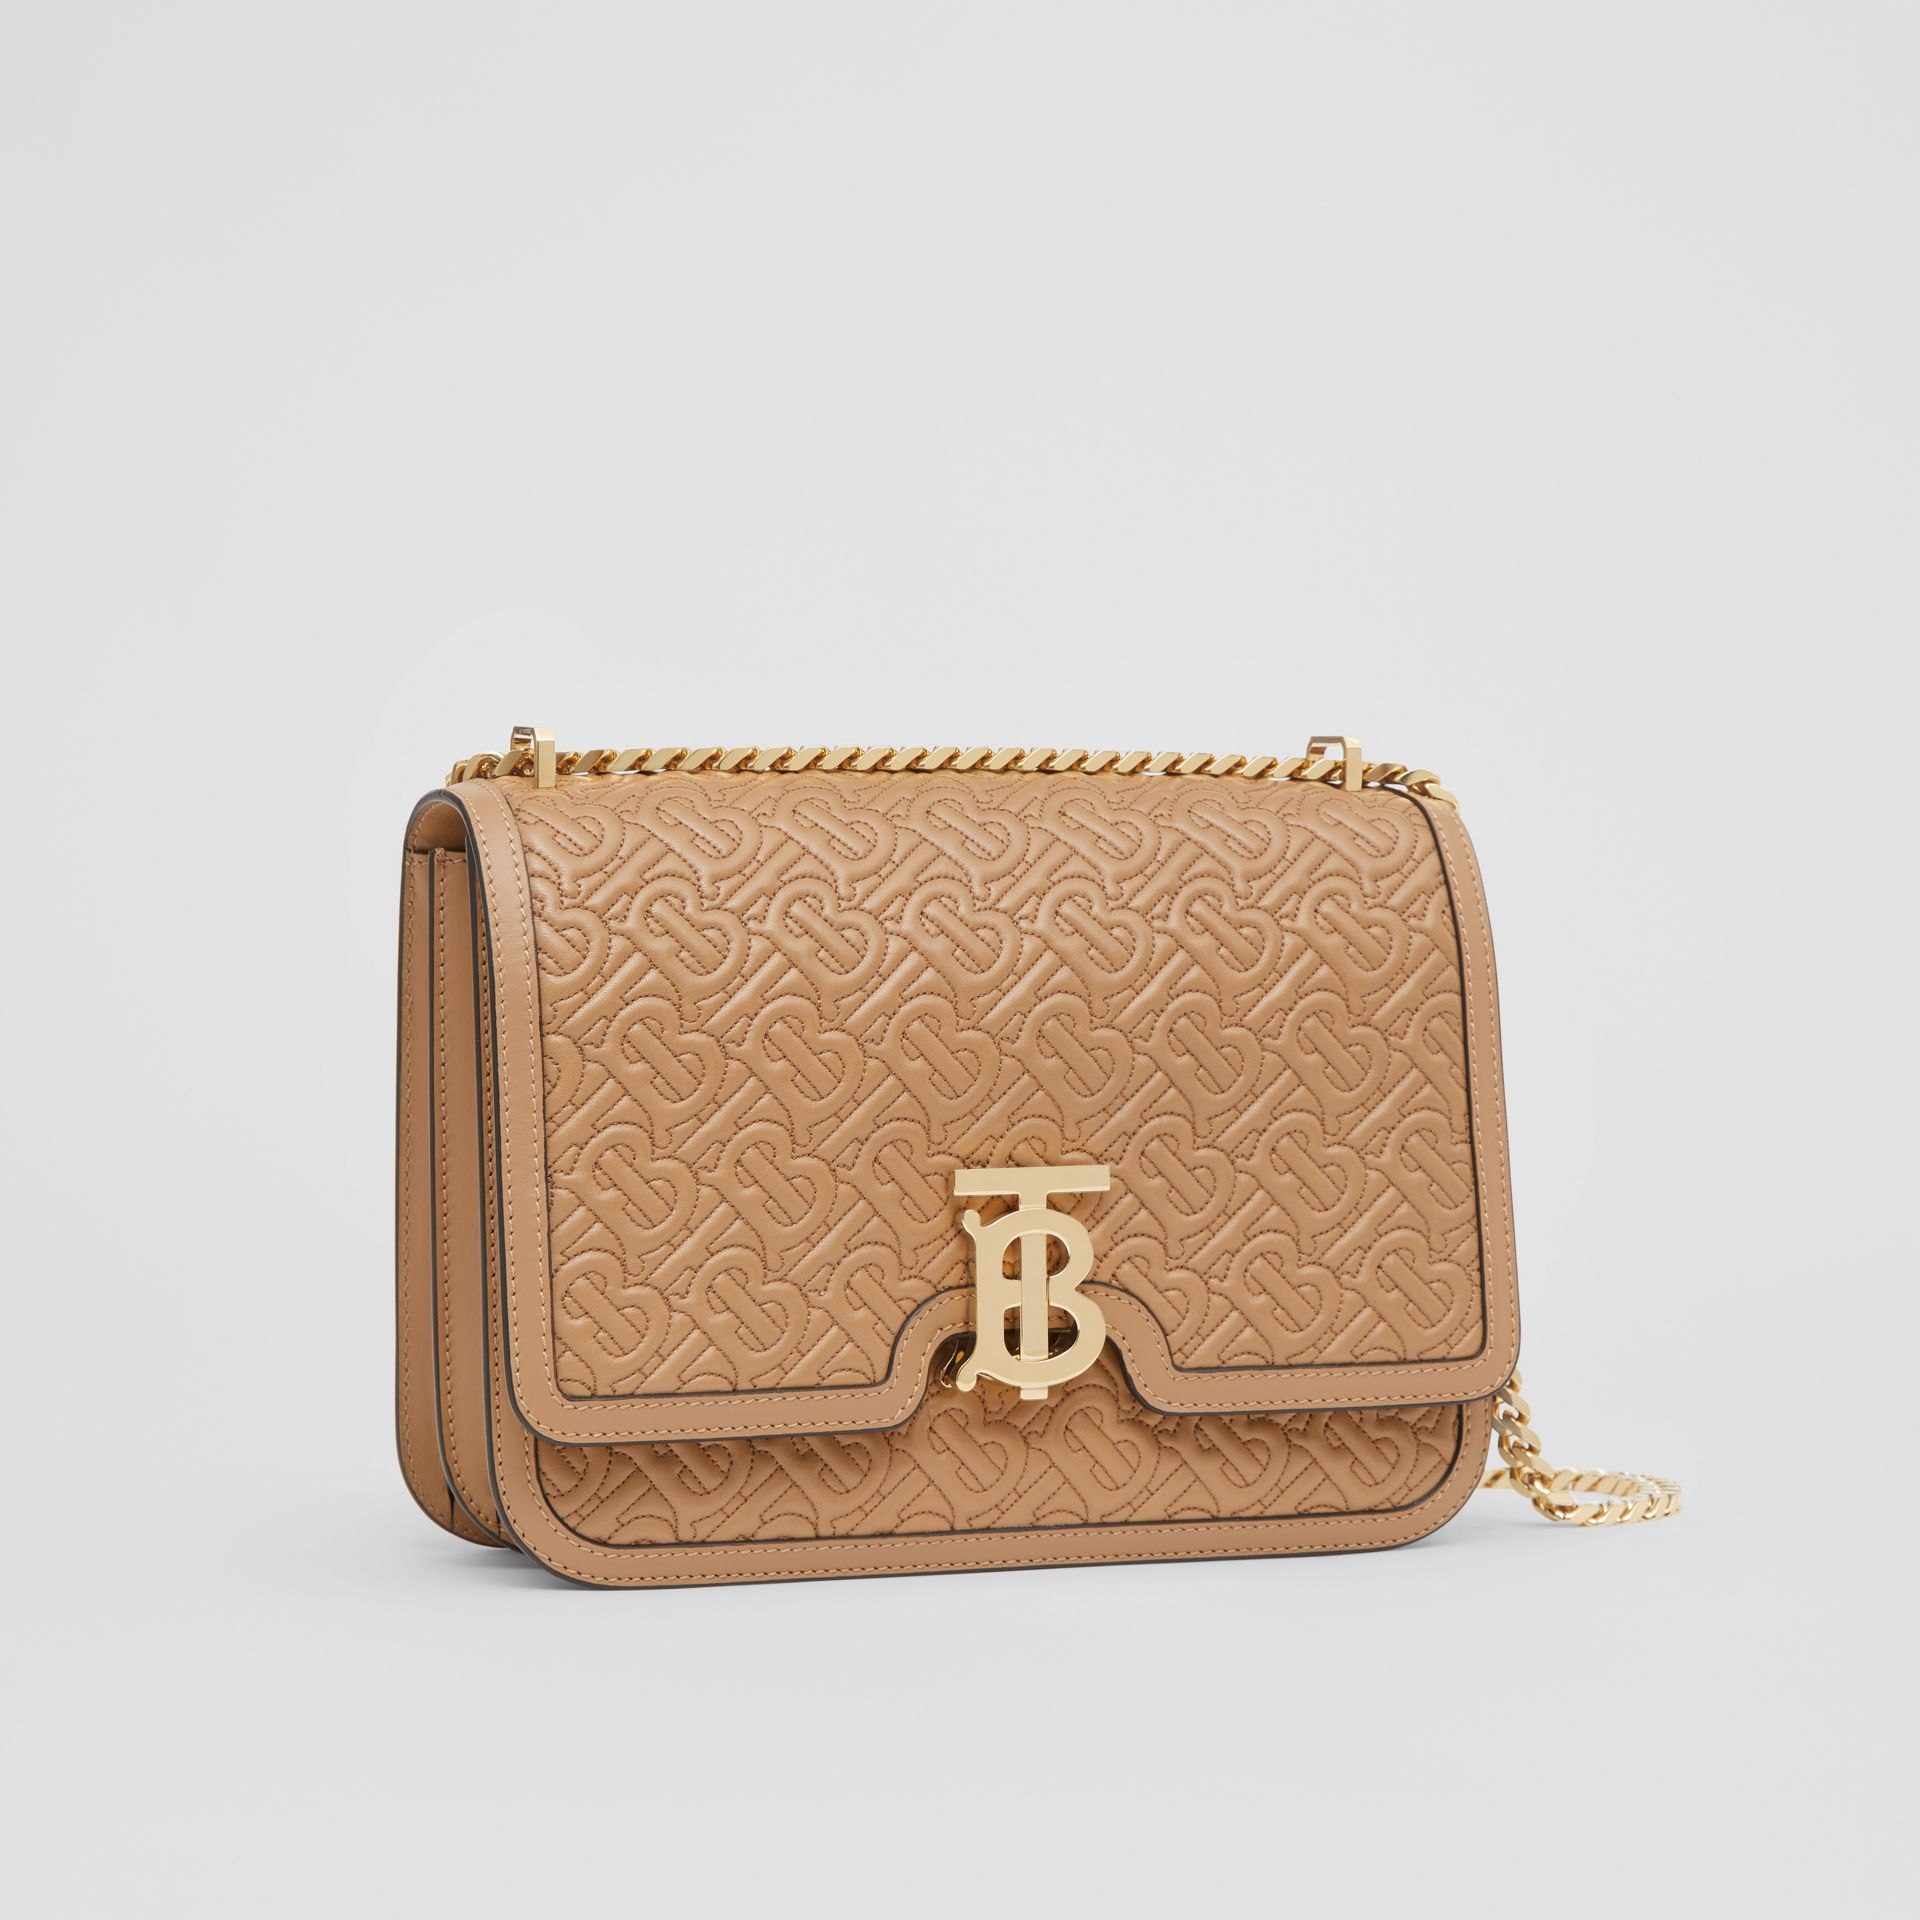 Medium Quilted Monogram Lambskin TB Bag in Honey - Women | Burberry Singapore - gallery image 6